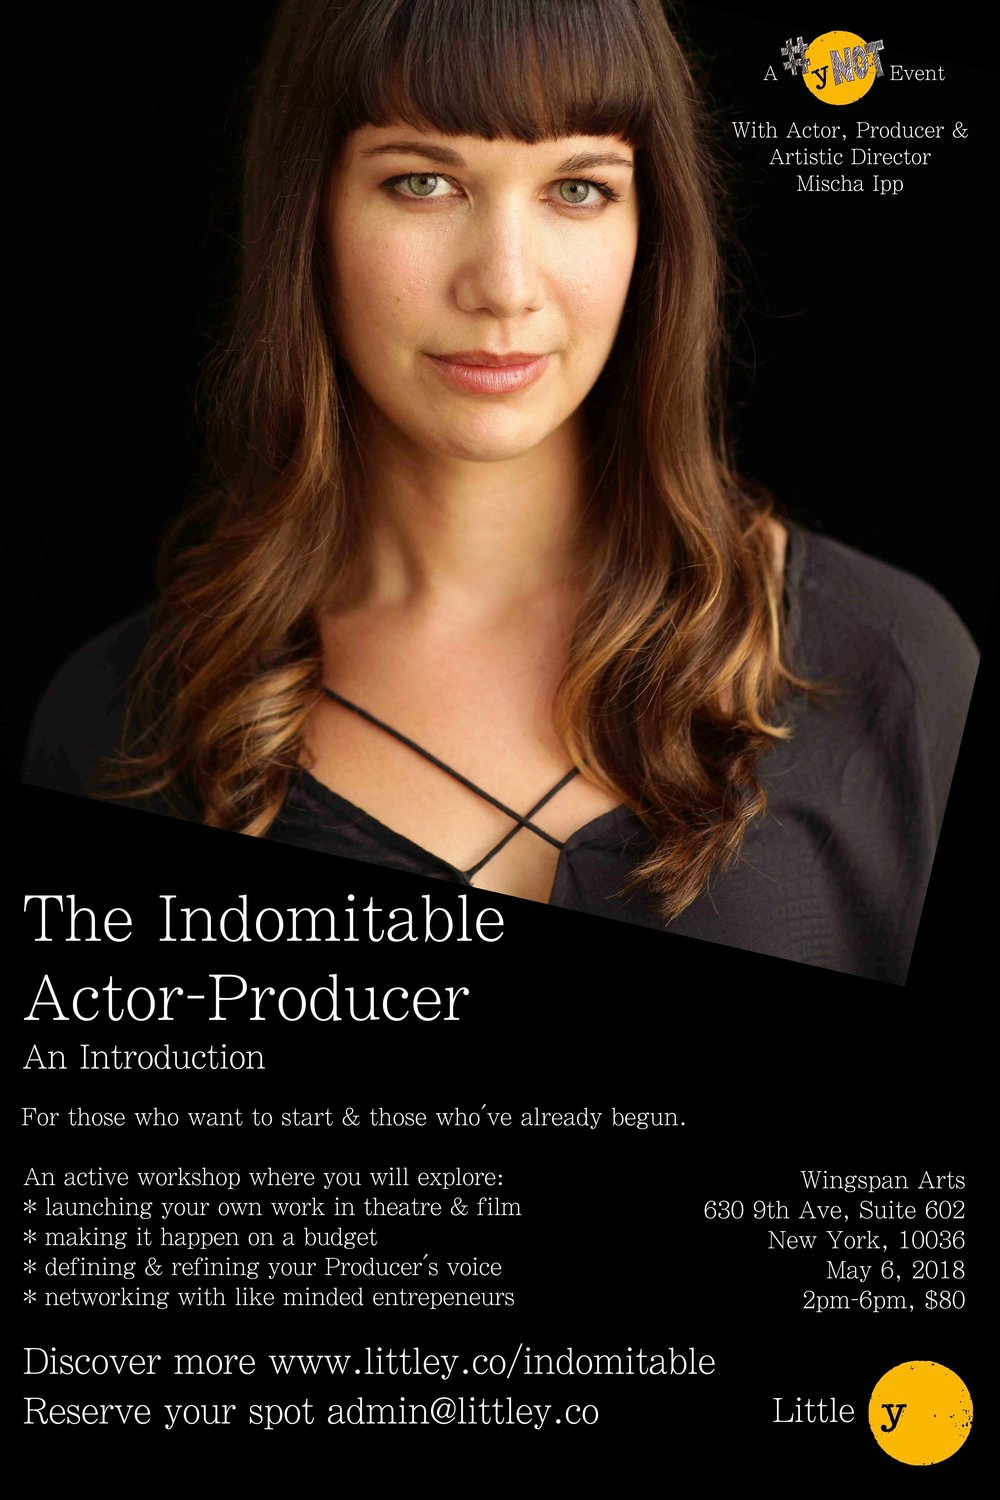 The Indomitable Actor-Producer.jpg